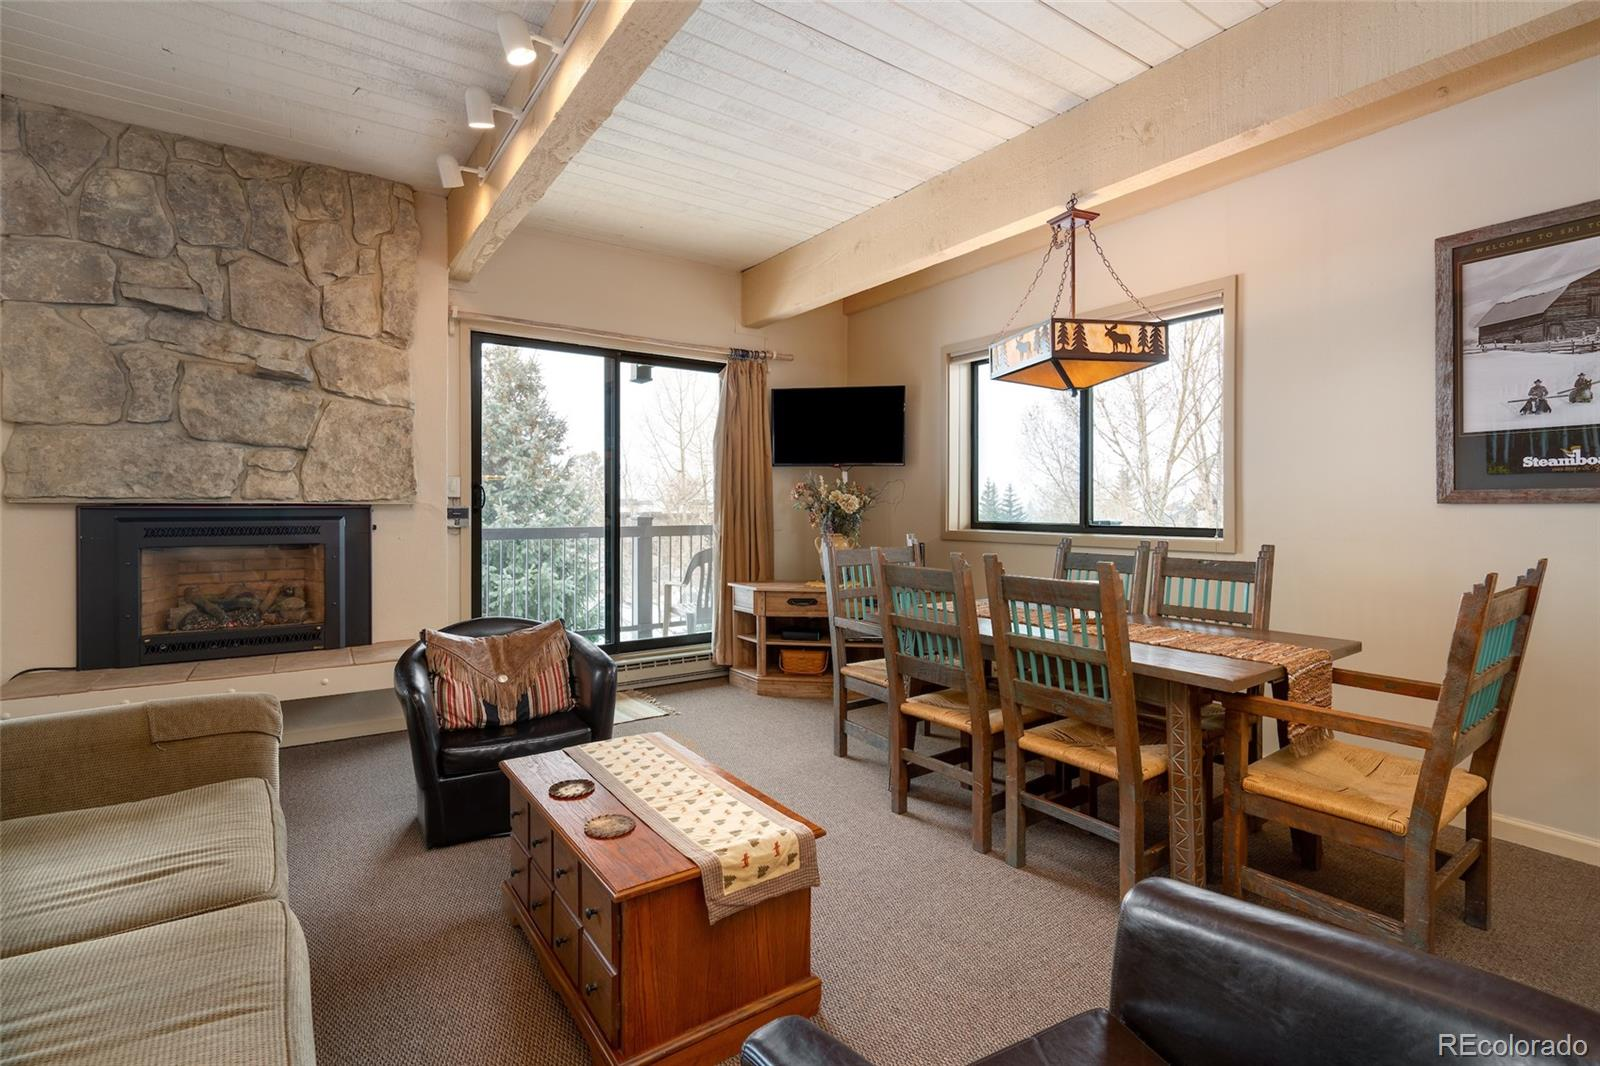 MLS# 8046163 - 14 - 2355 Storm Meadows Dr 311  #A-311, Steamboat Springs, CO 80487